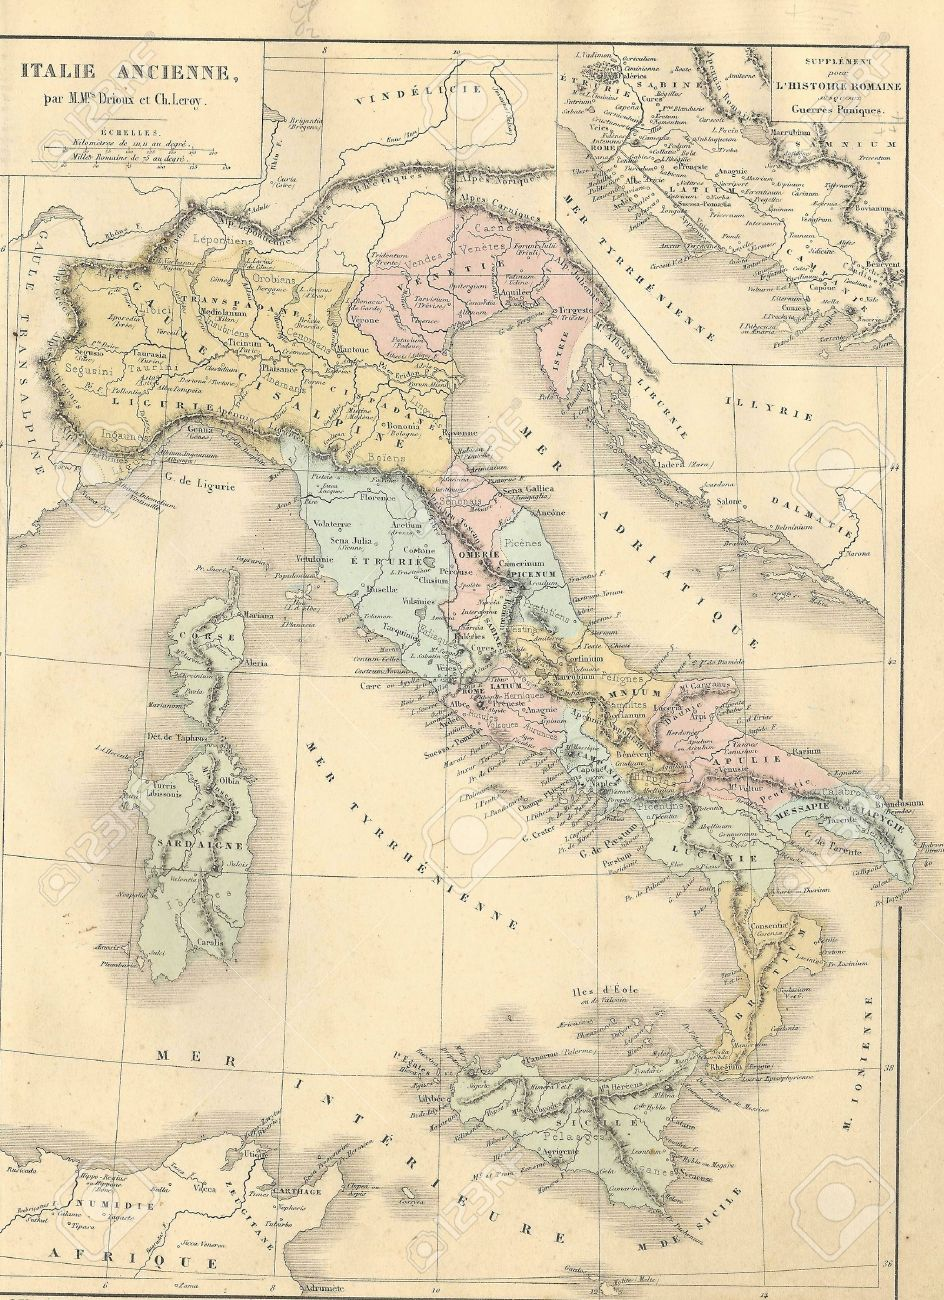 Antique Map Of Ancient Italy From1869 Atlas Universel Et Classique